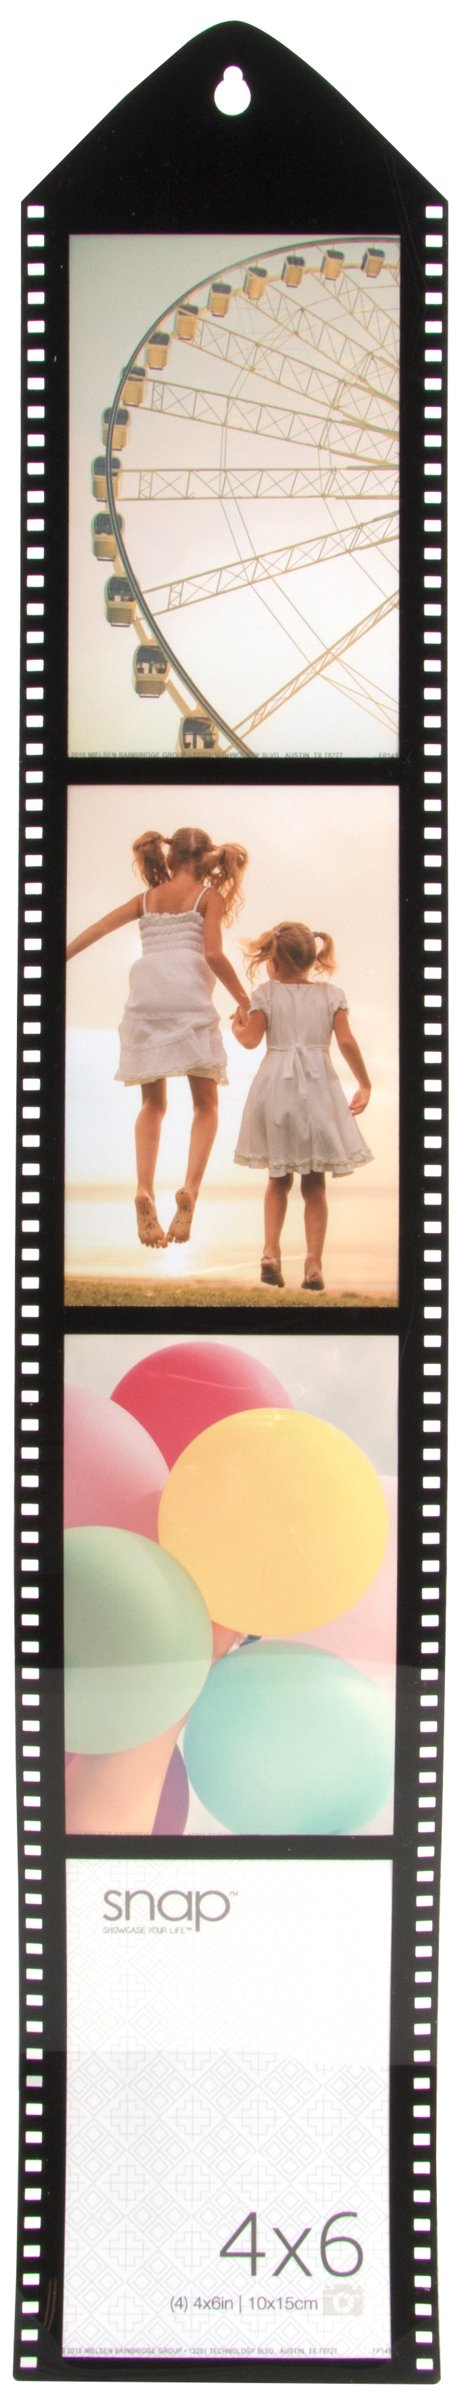 Snap Movie Reel Picture Frame with 4-4x6 Openings